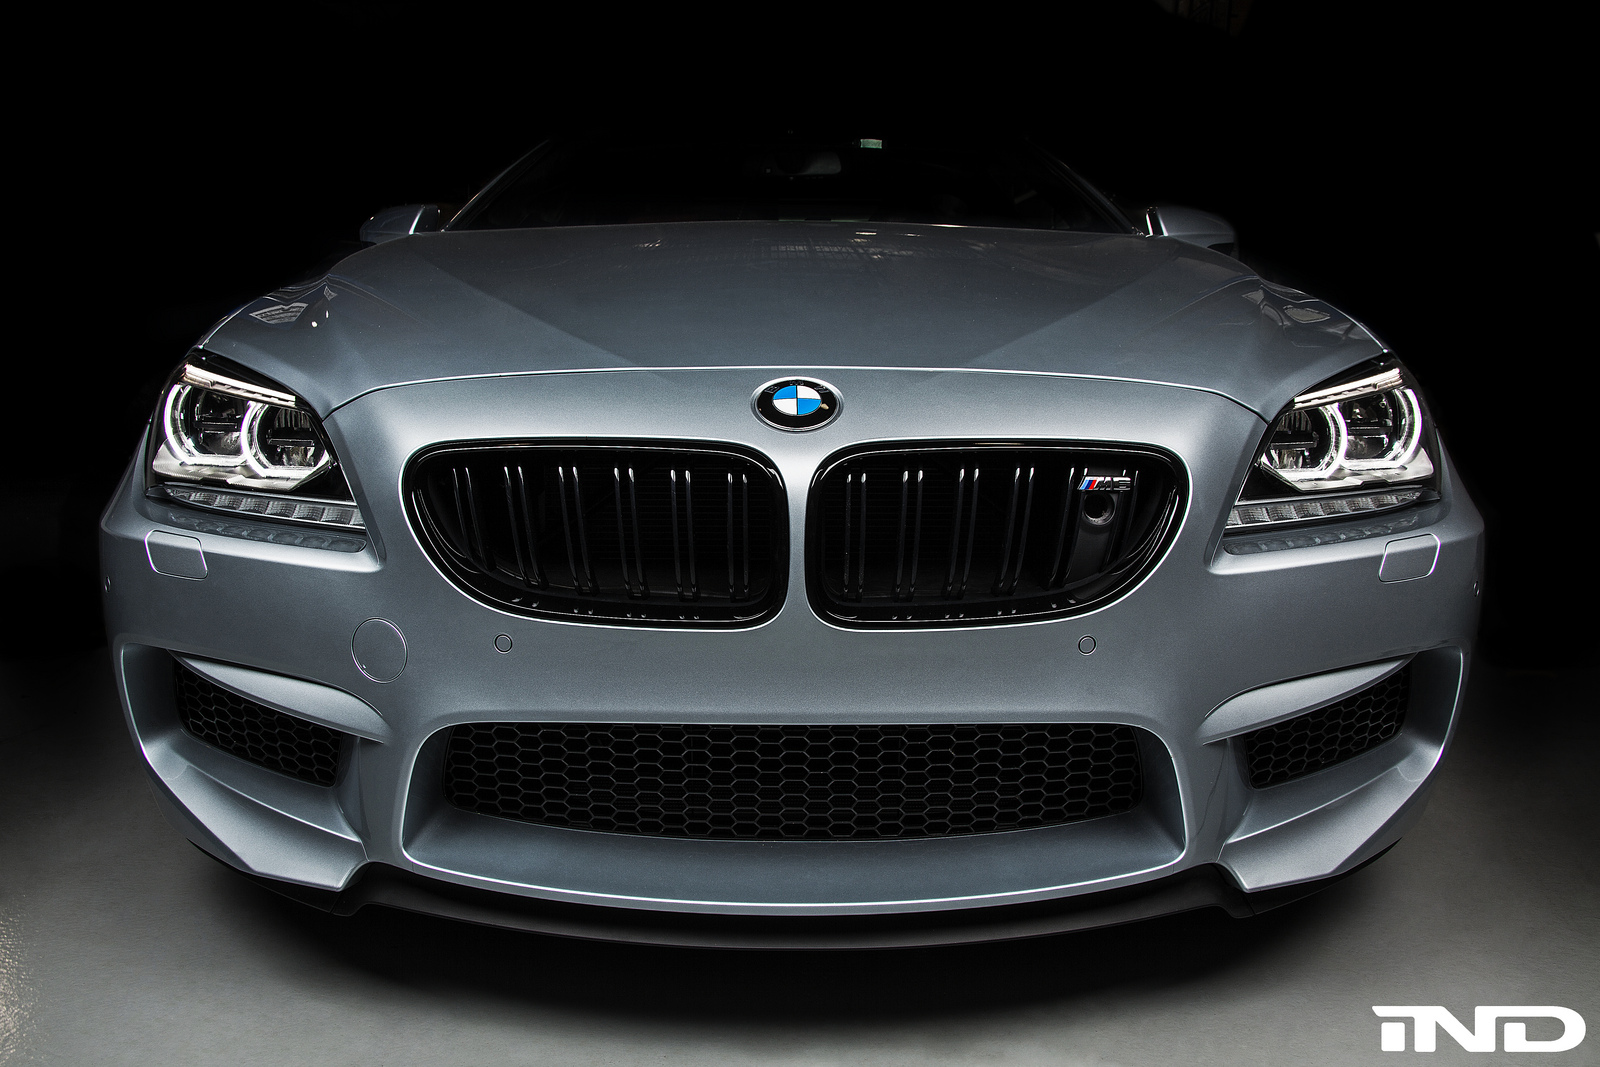 2014 BMW M6 1 4 mile trap speeds 0 60 DragTimes